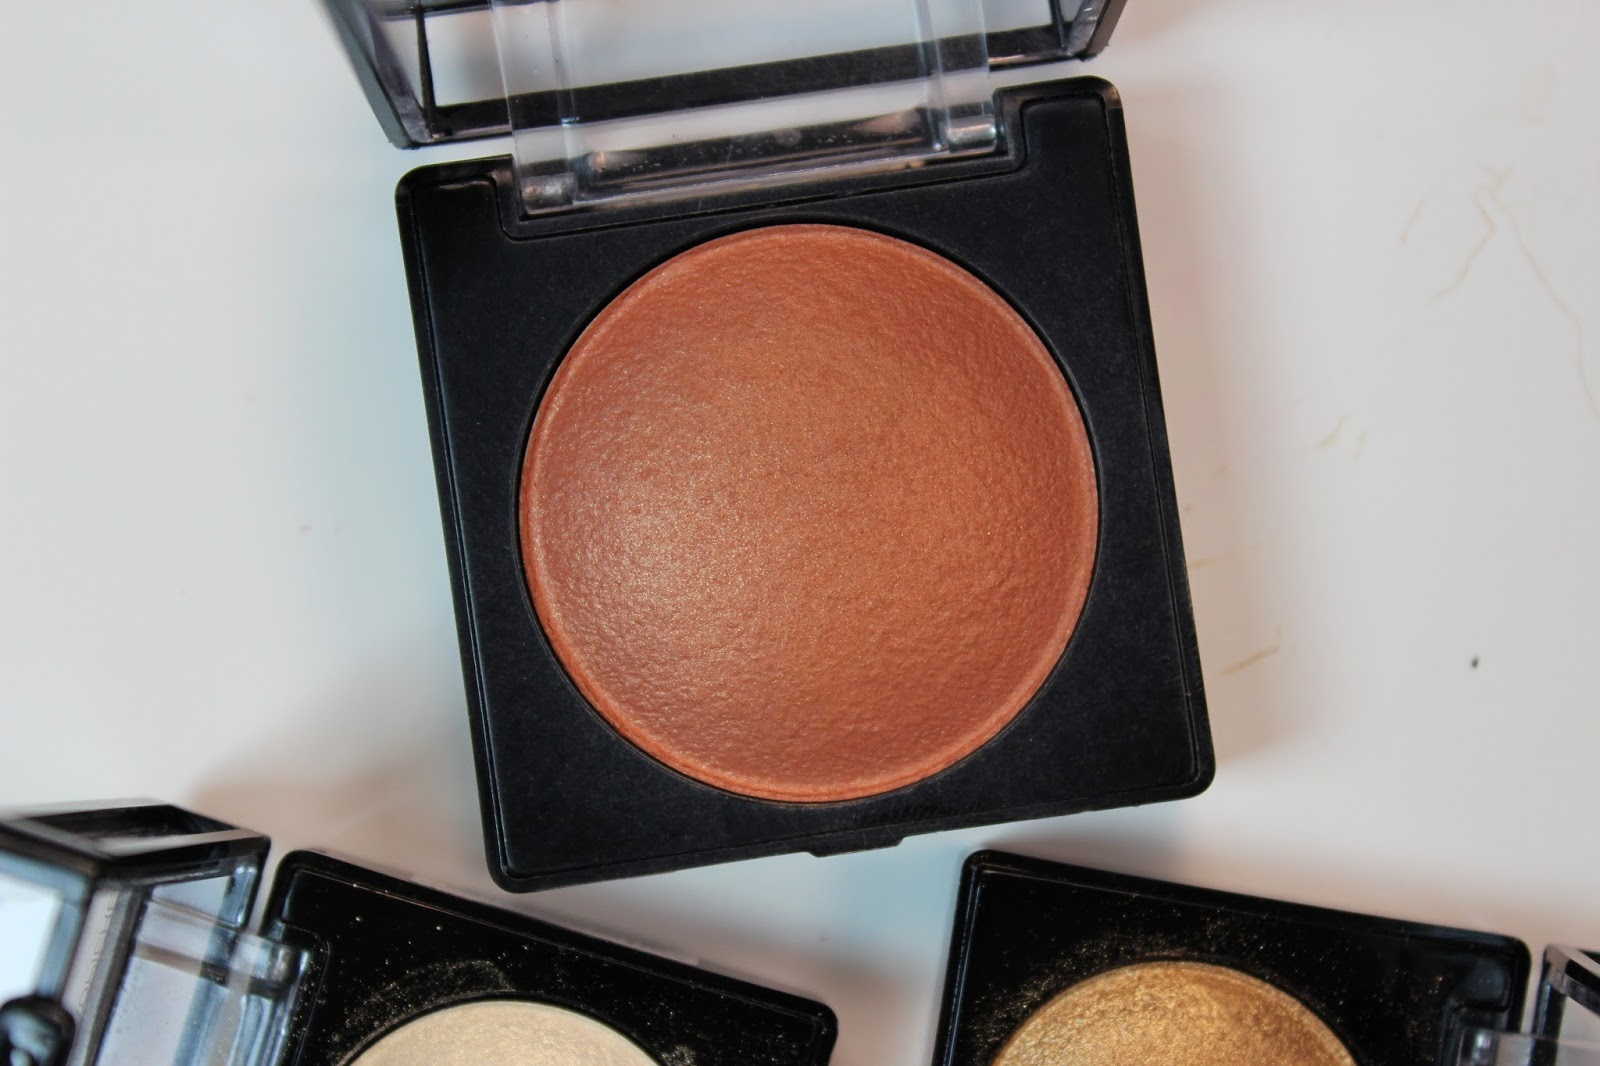 Nyx Baked Blush Ignite Nyx Baked Blush in Ignite